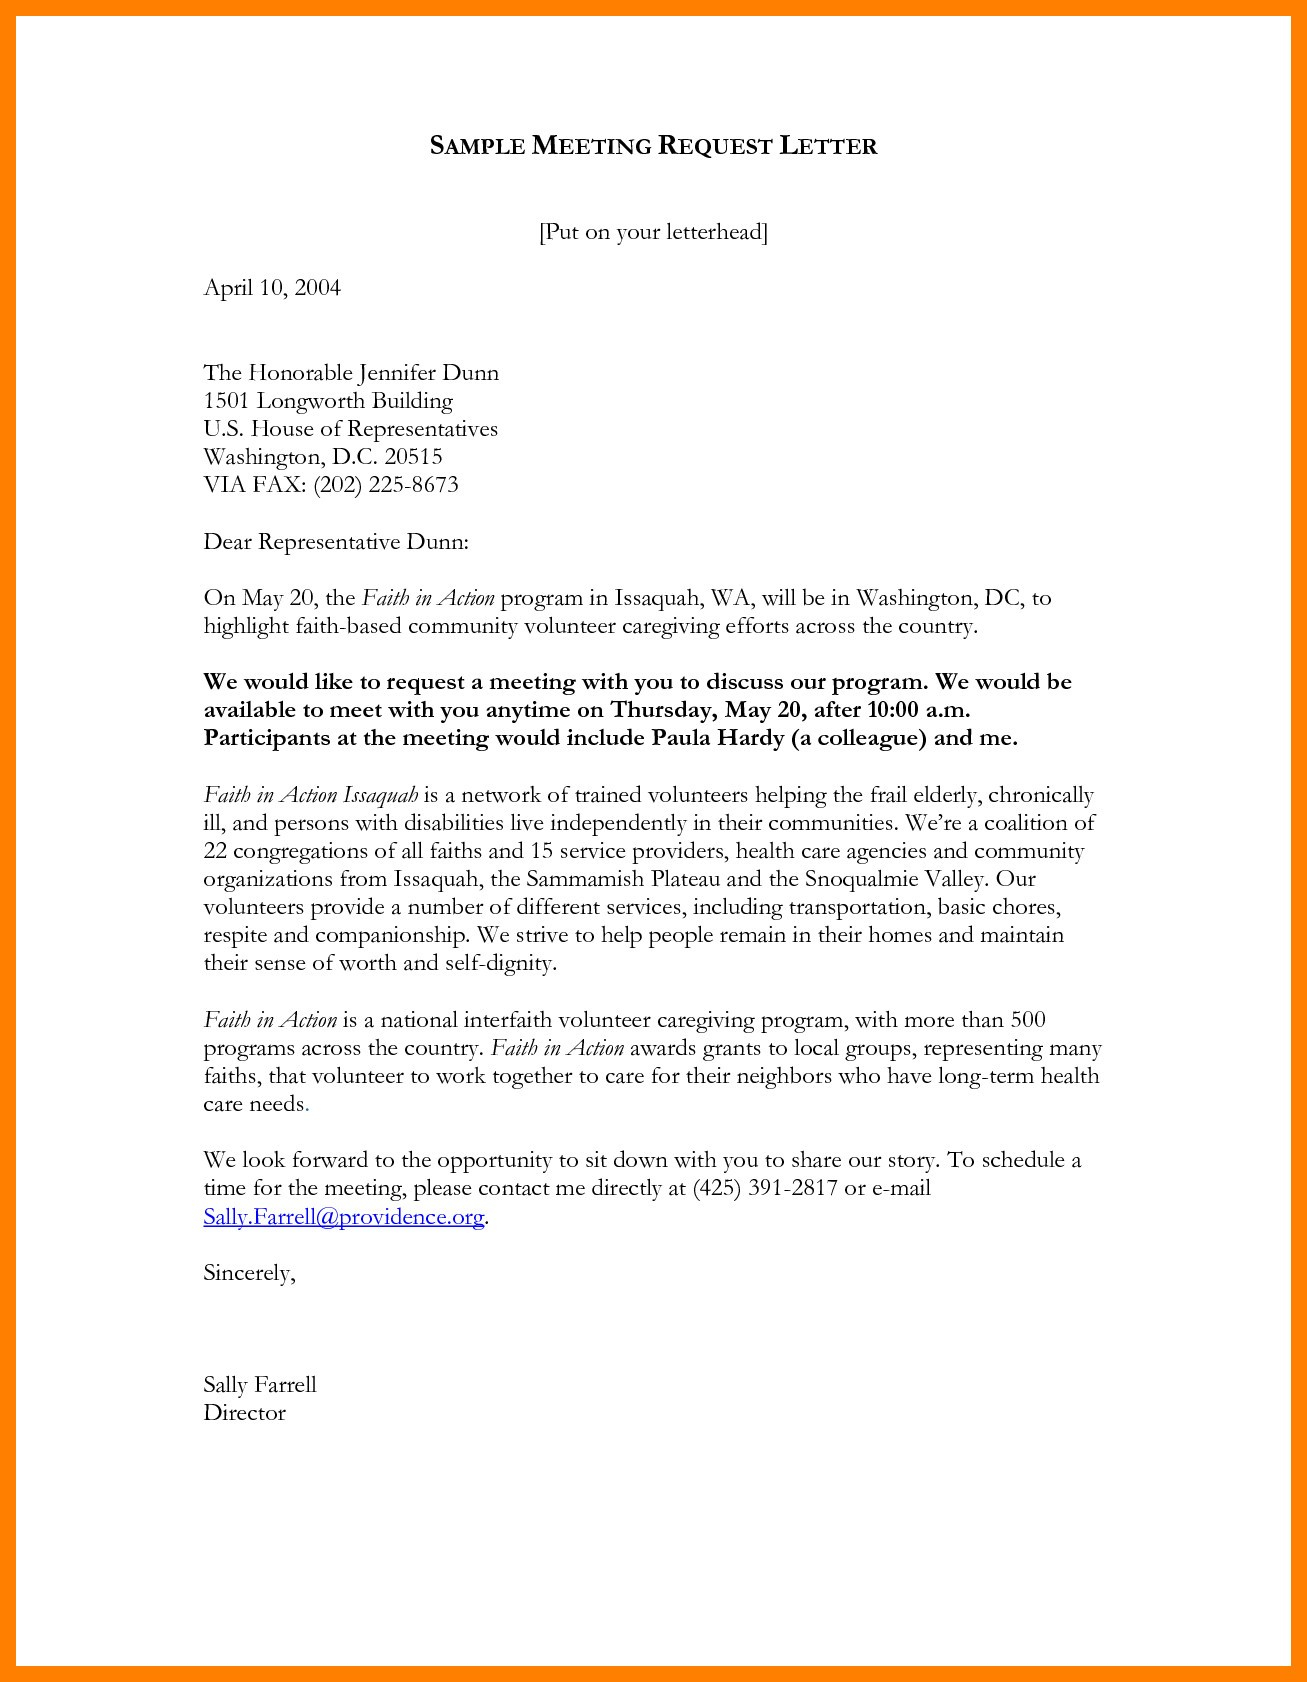 Formal Demand Letter Template - Letter Writing format for Request New formal Request Letter Example